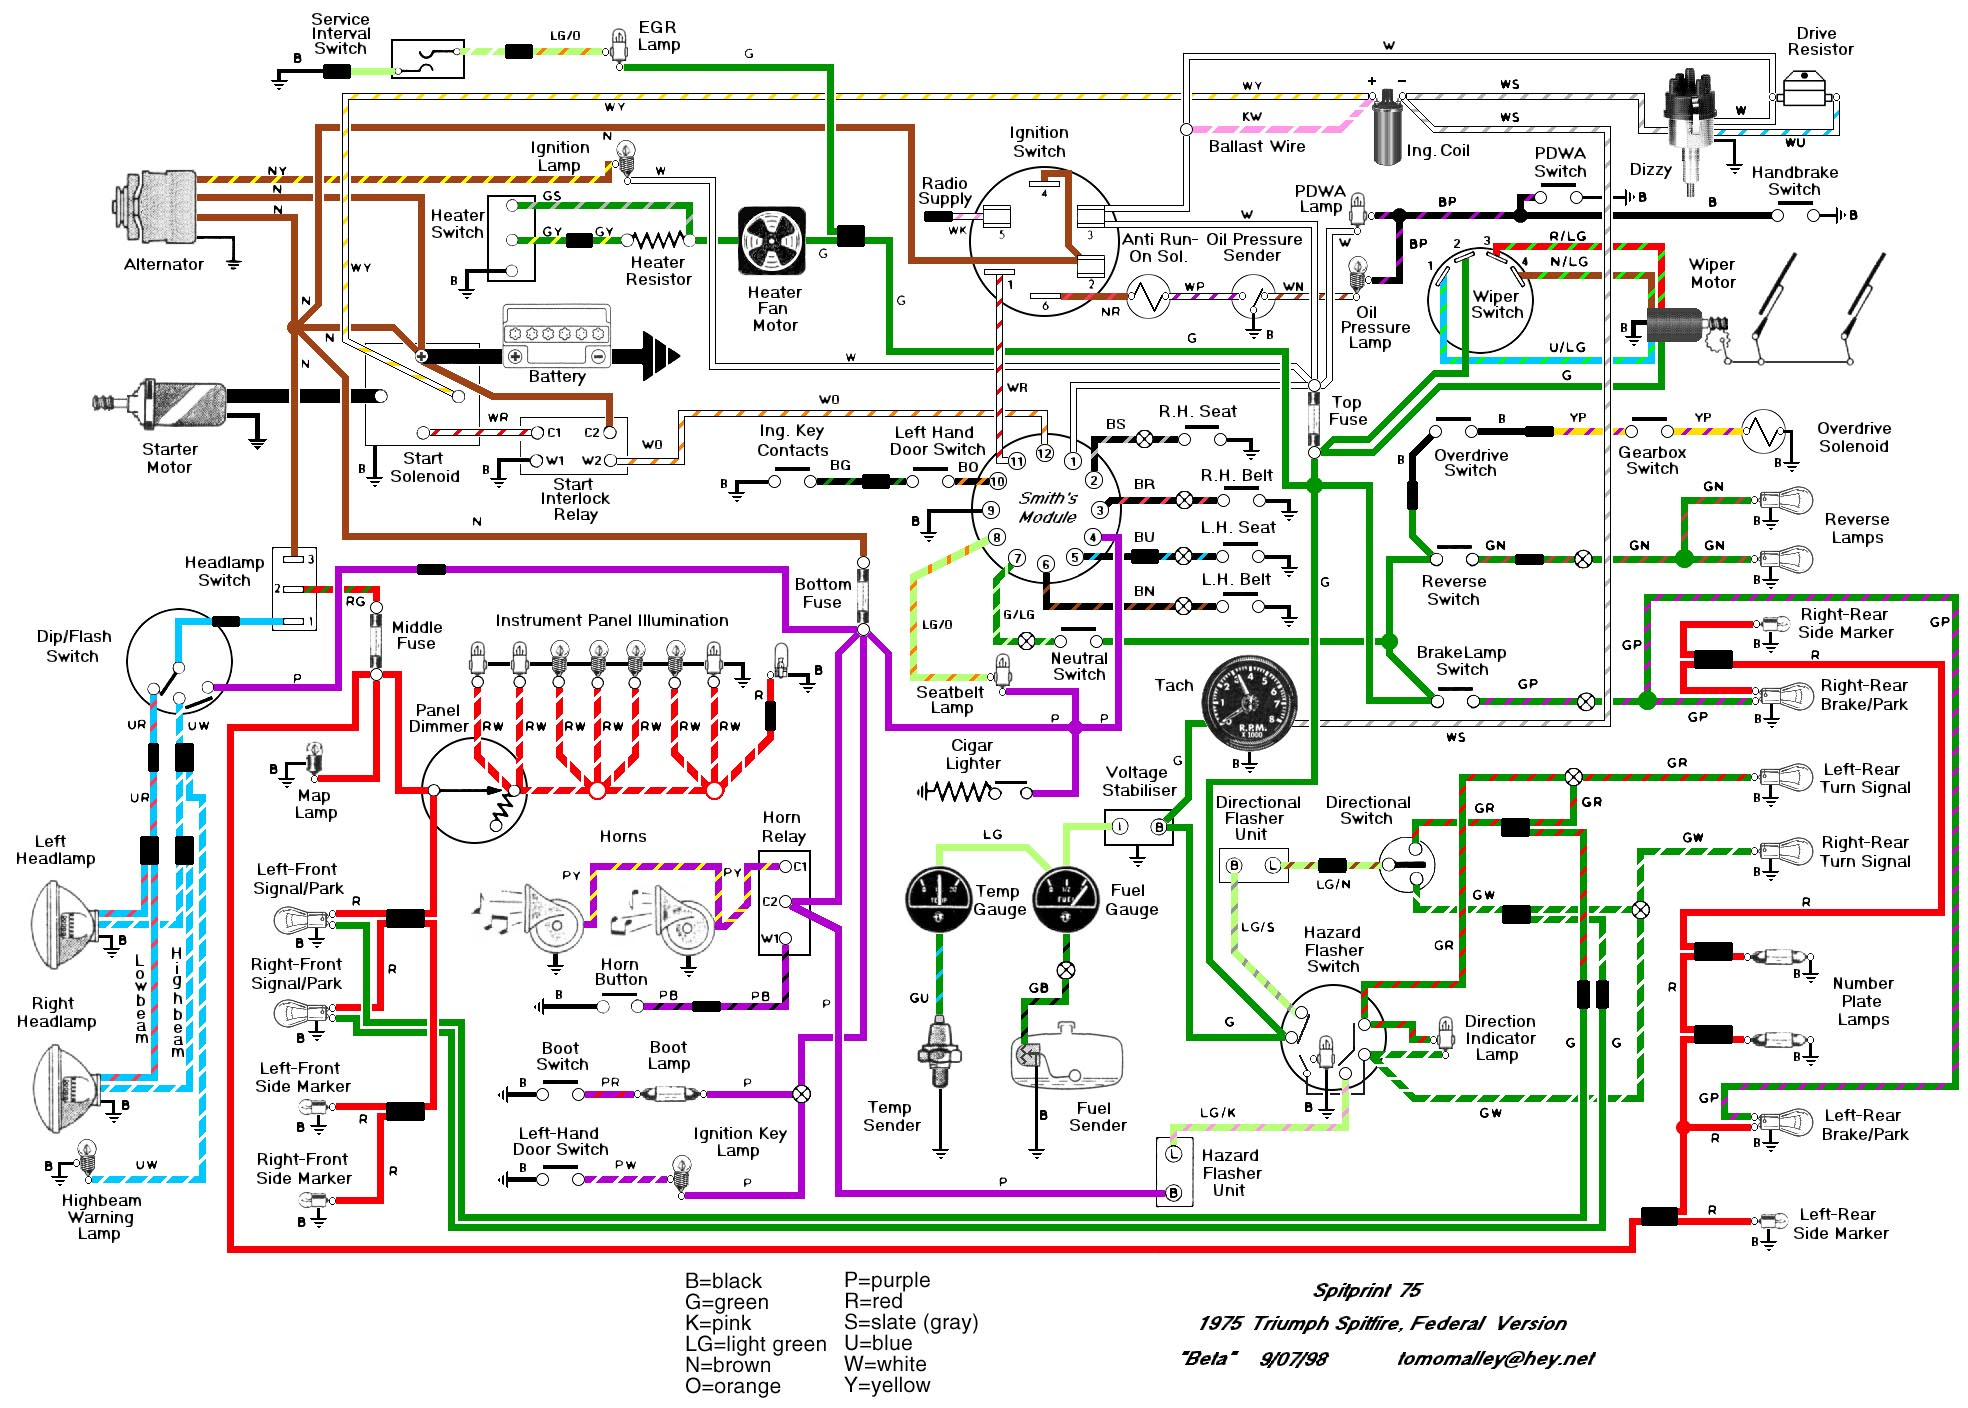 1979 chevy camaro wiring diagram with Wiring on 1974 Corvette Gas Tank Diagram as well 55 Chevy Bel Air Wiring Diagram likewise 350 Chevy Engine Firing Order Diagram furthermore 3817977 Wiper Motor Wiring moreover 516580 Heater Blower Motor Resistor.